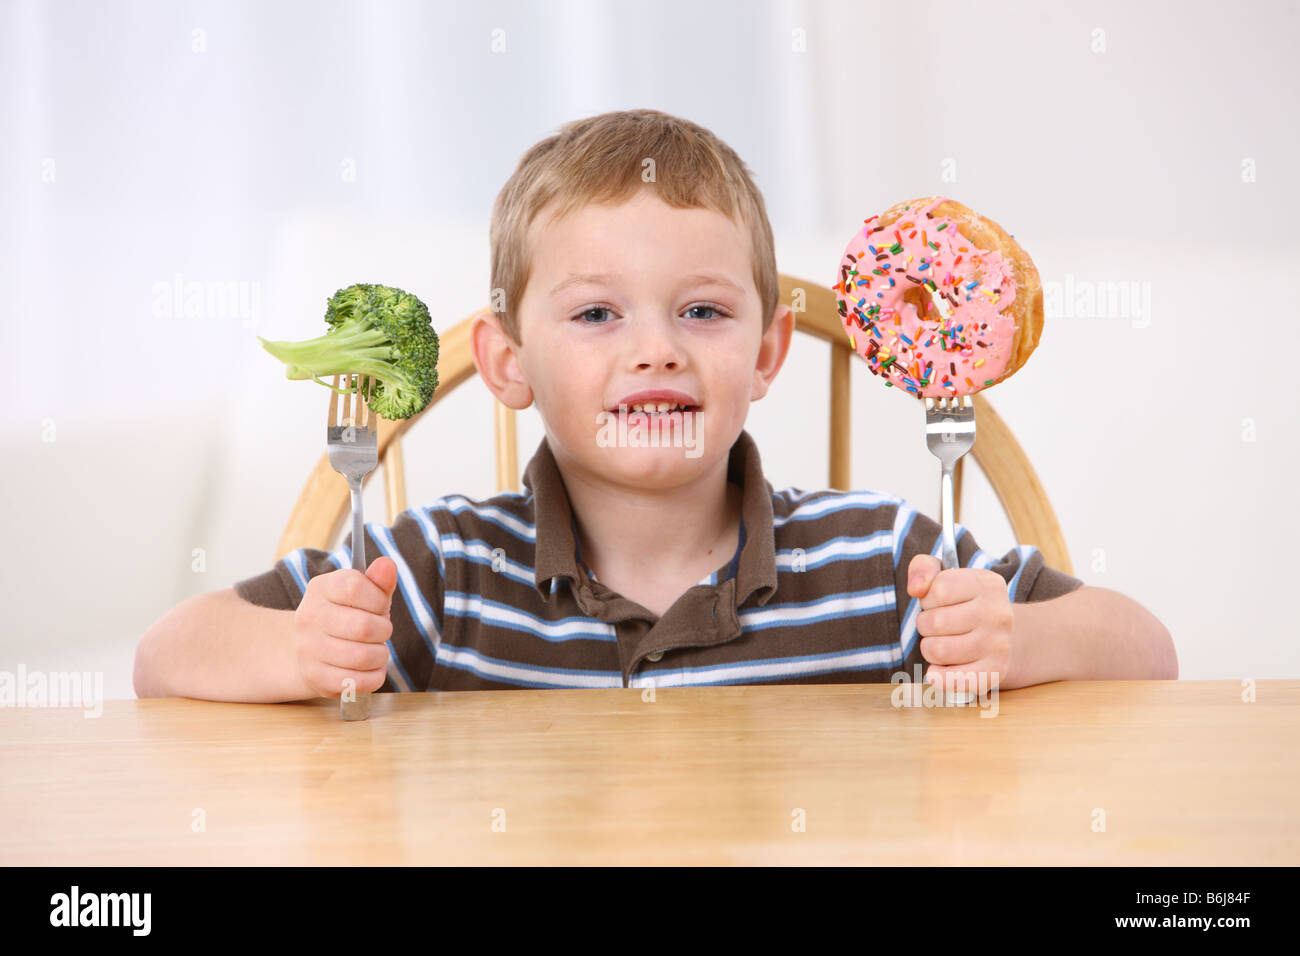 Young boy with donut and broccoli on forks - Stock Image